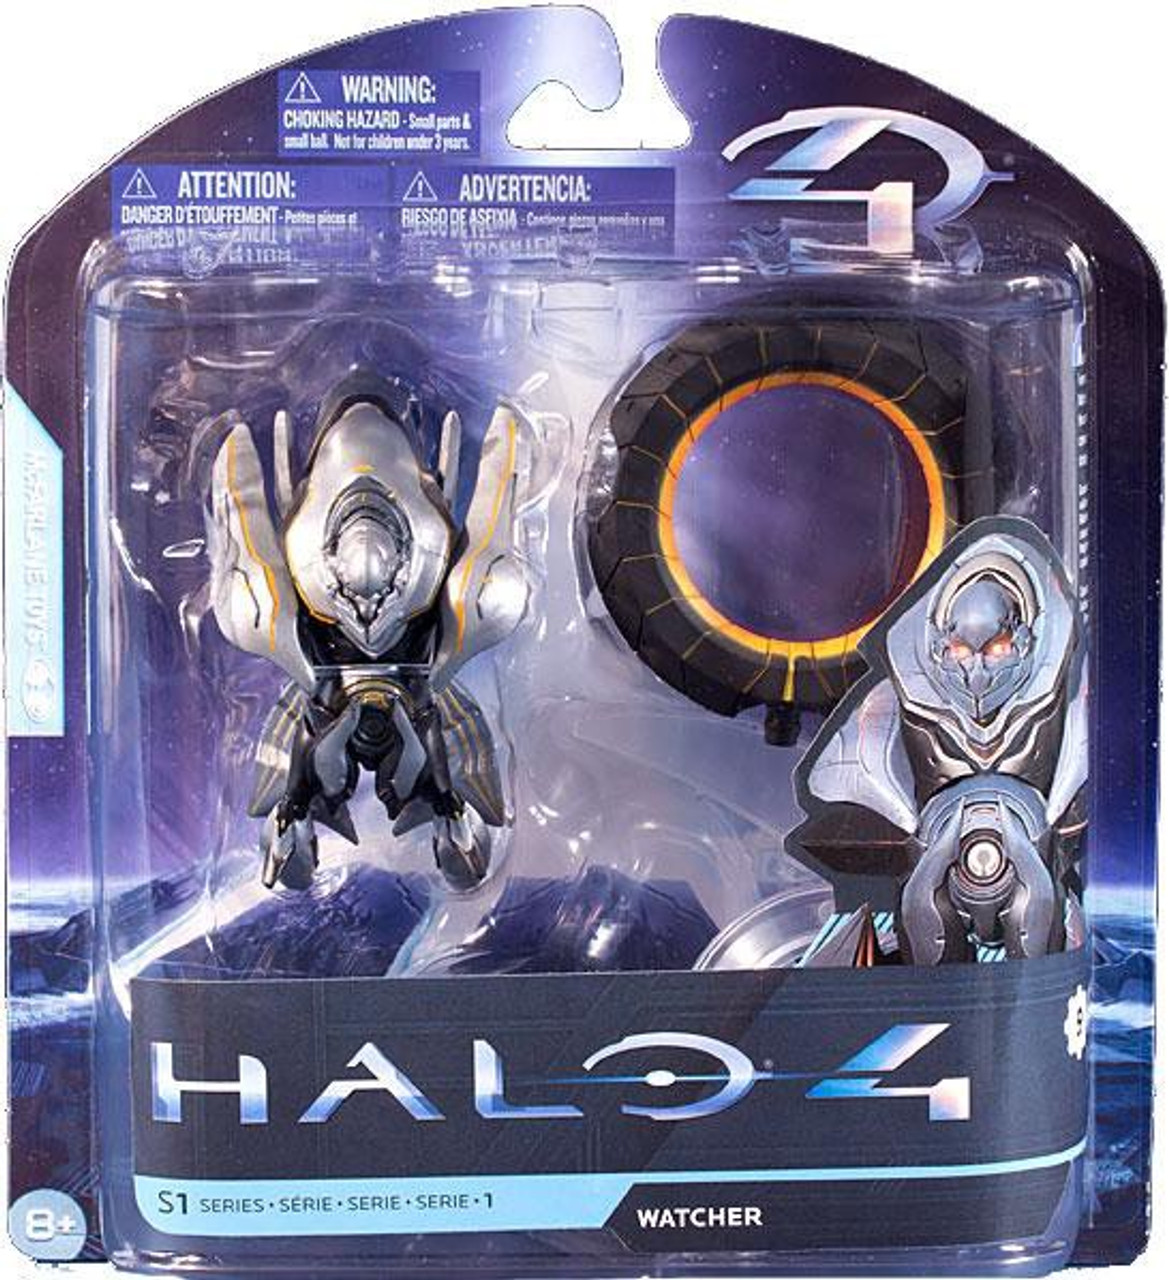 McFarlane Toys Halo 4 Series 1 Extended Watcher Action Figure